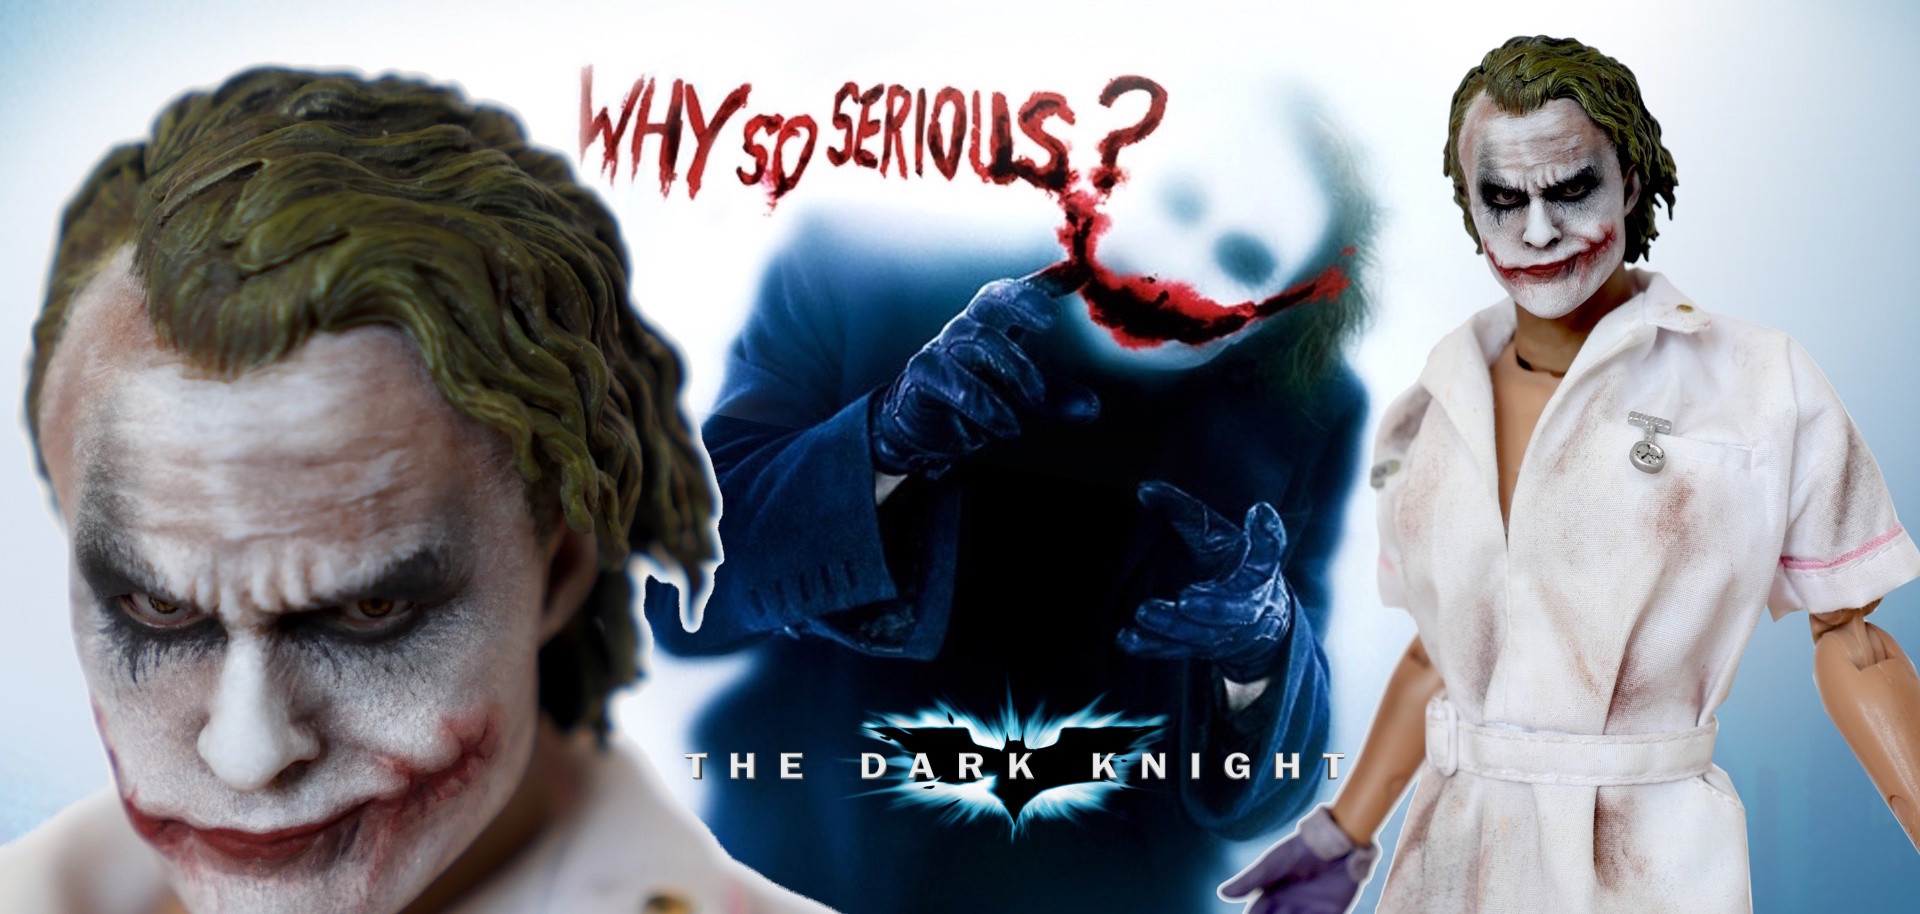 Michael enea why so serious 1920x1080